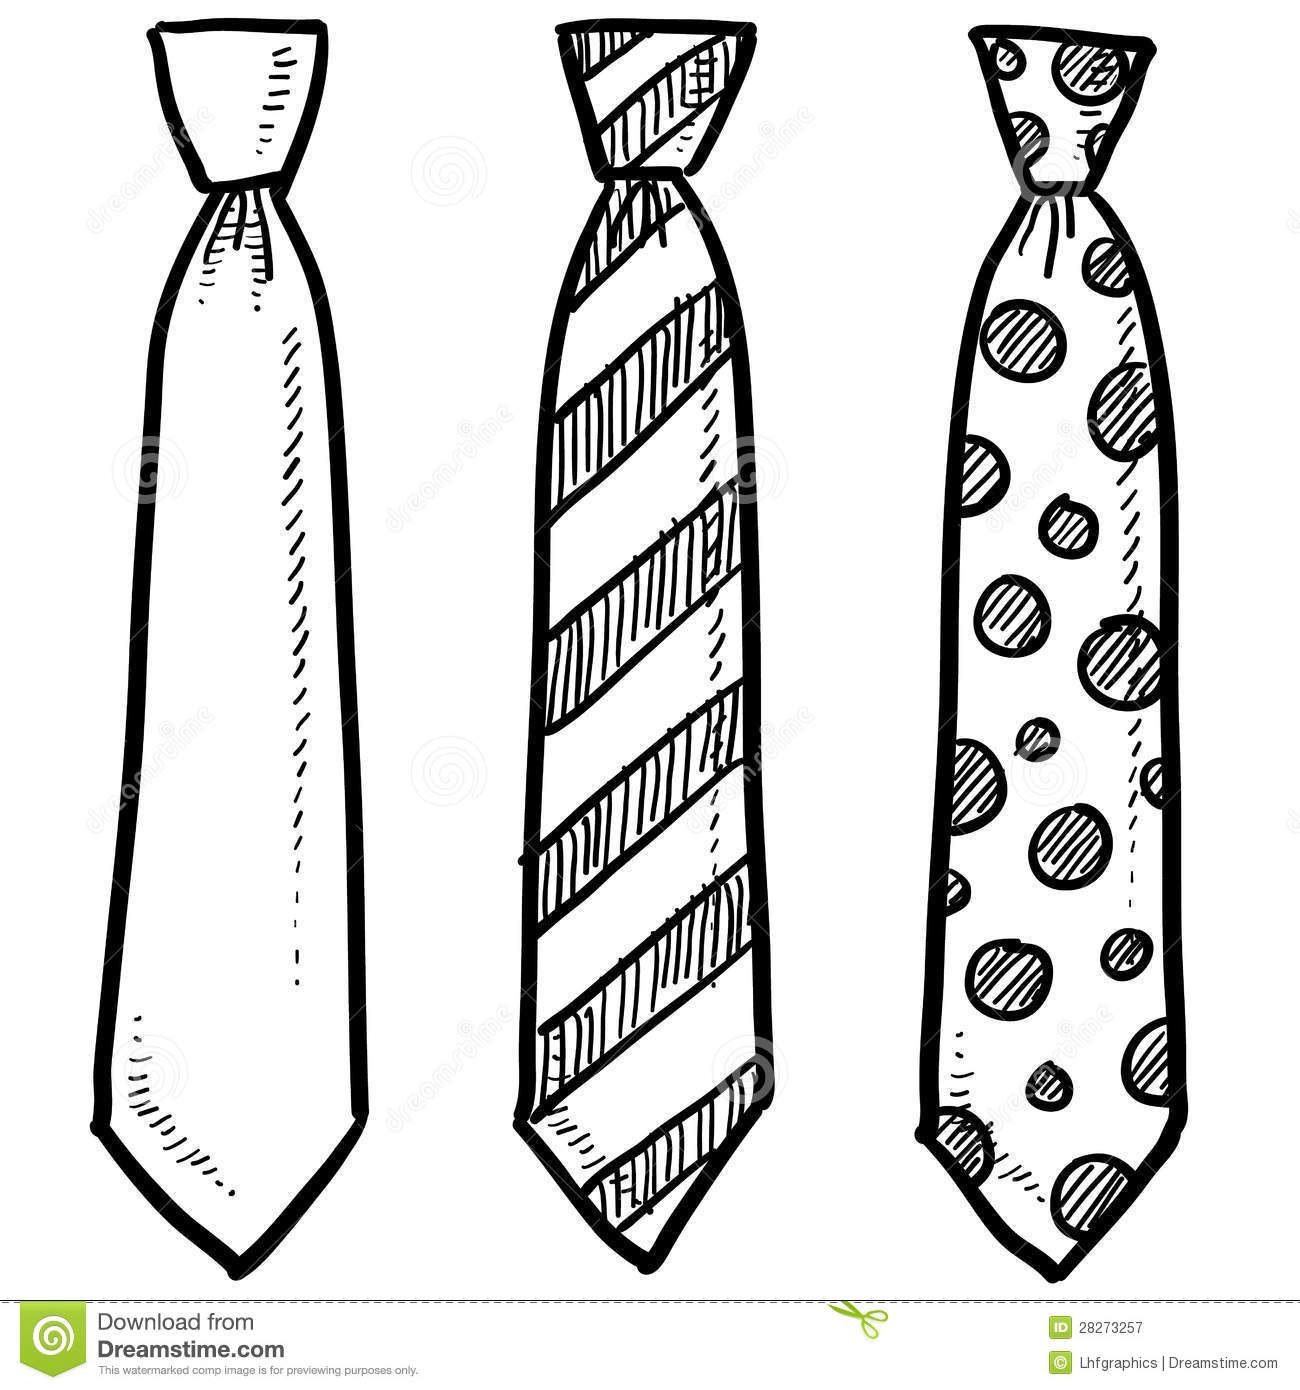 Clothing Necktie Sketch Royalty Free Stock Photography